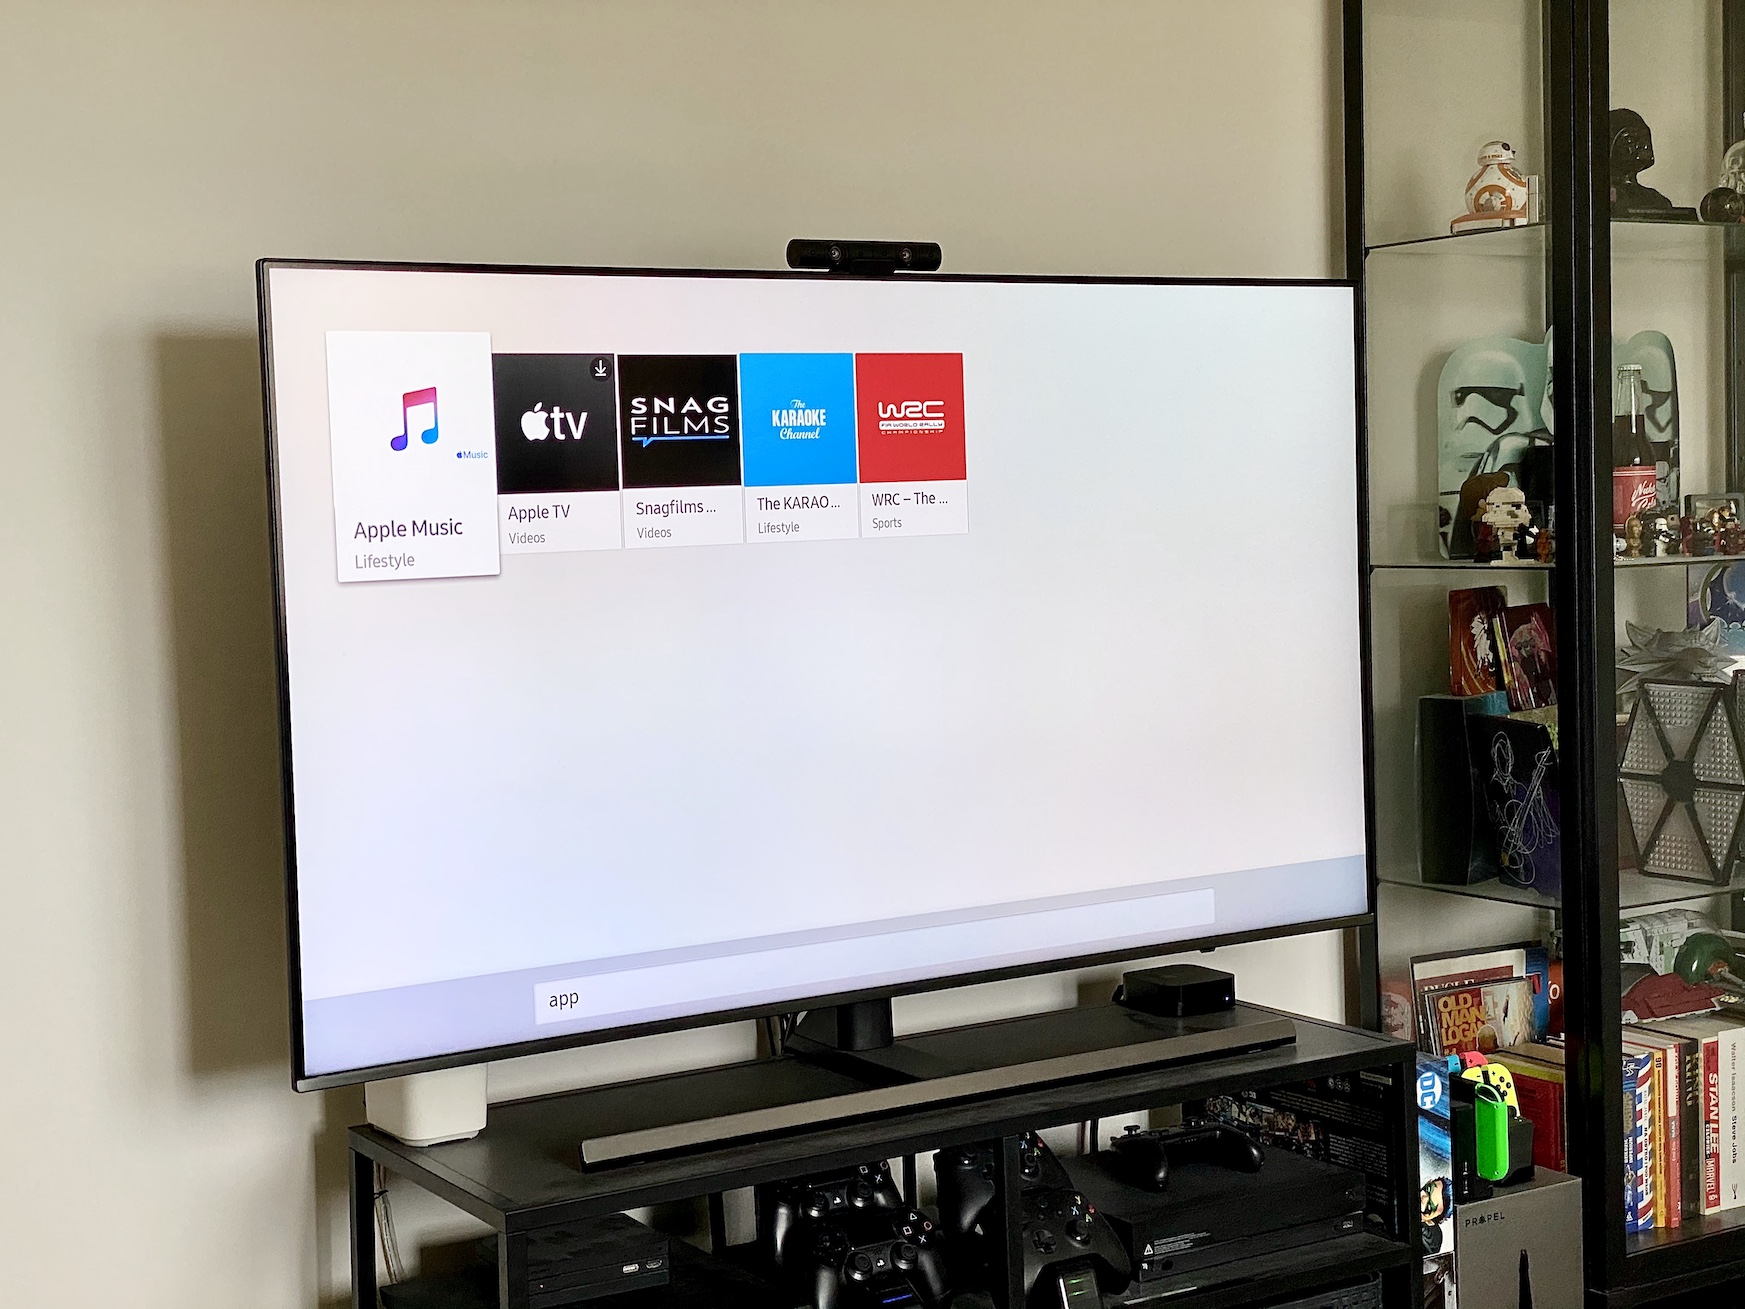 apple music samsung smart tv aplikacja